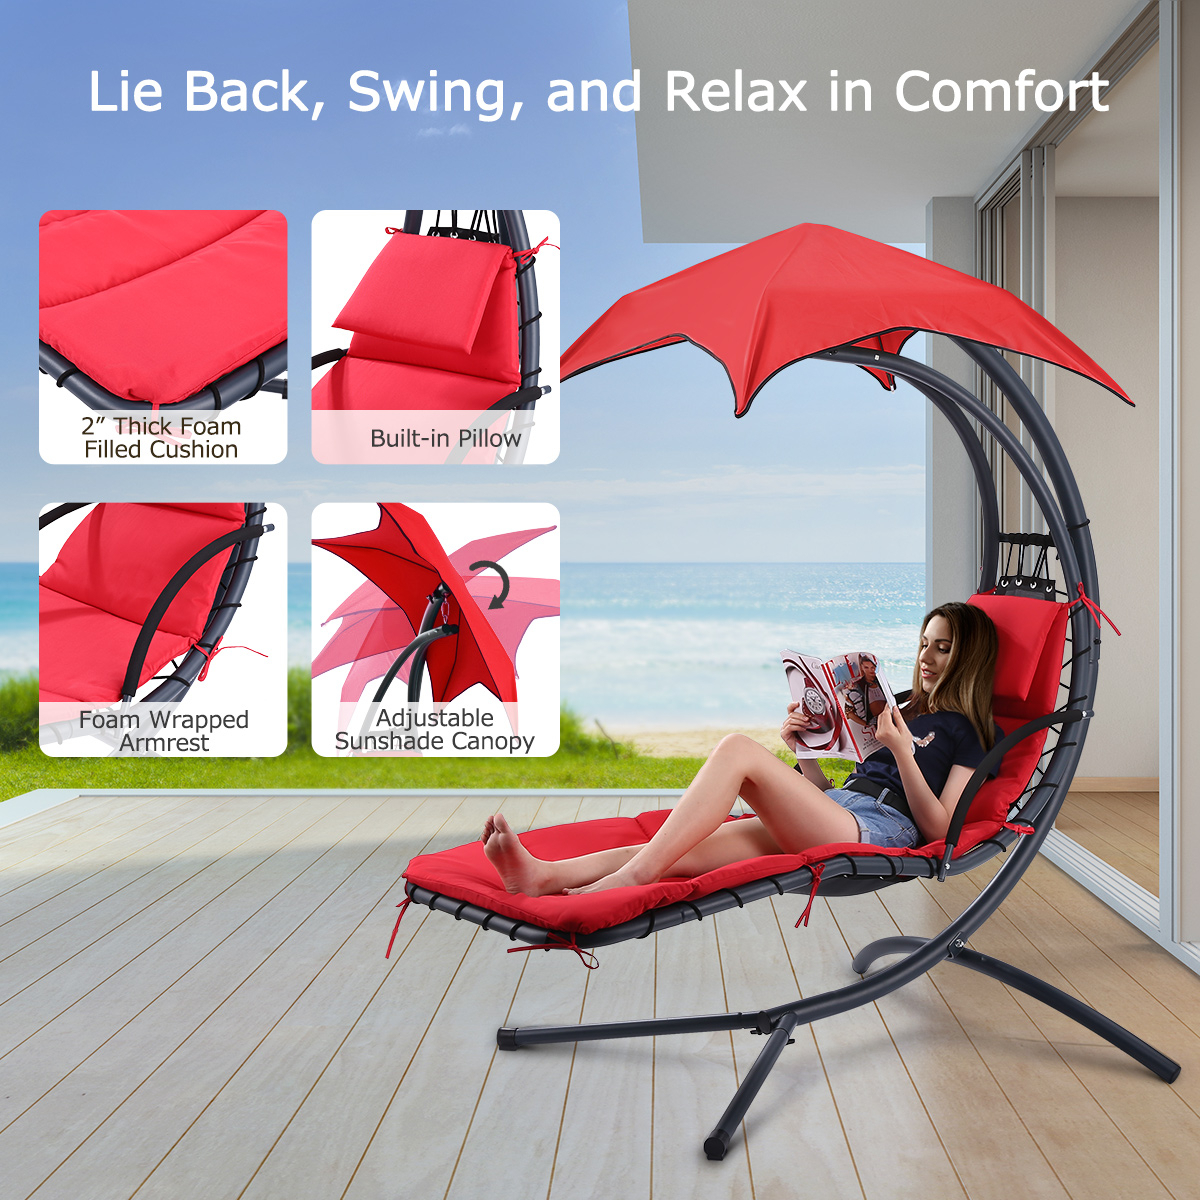 Details About Hammock Hanging Chair Lounge Chaise Indoor Outdoor Yard Patio Canopy Sun Shade Intended For Garden Leisure Outdoor Hammock Patio Canopy Rocking Chairs (View 19 of 25)